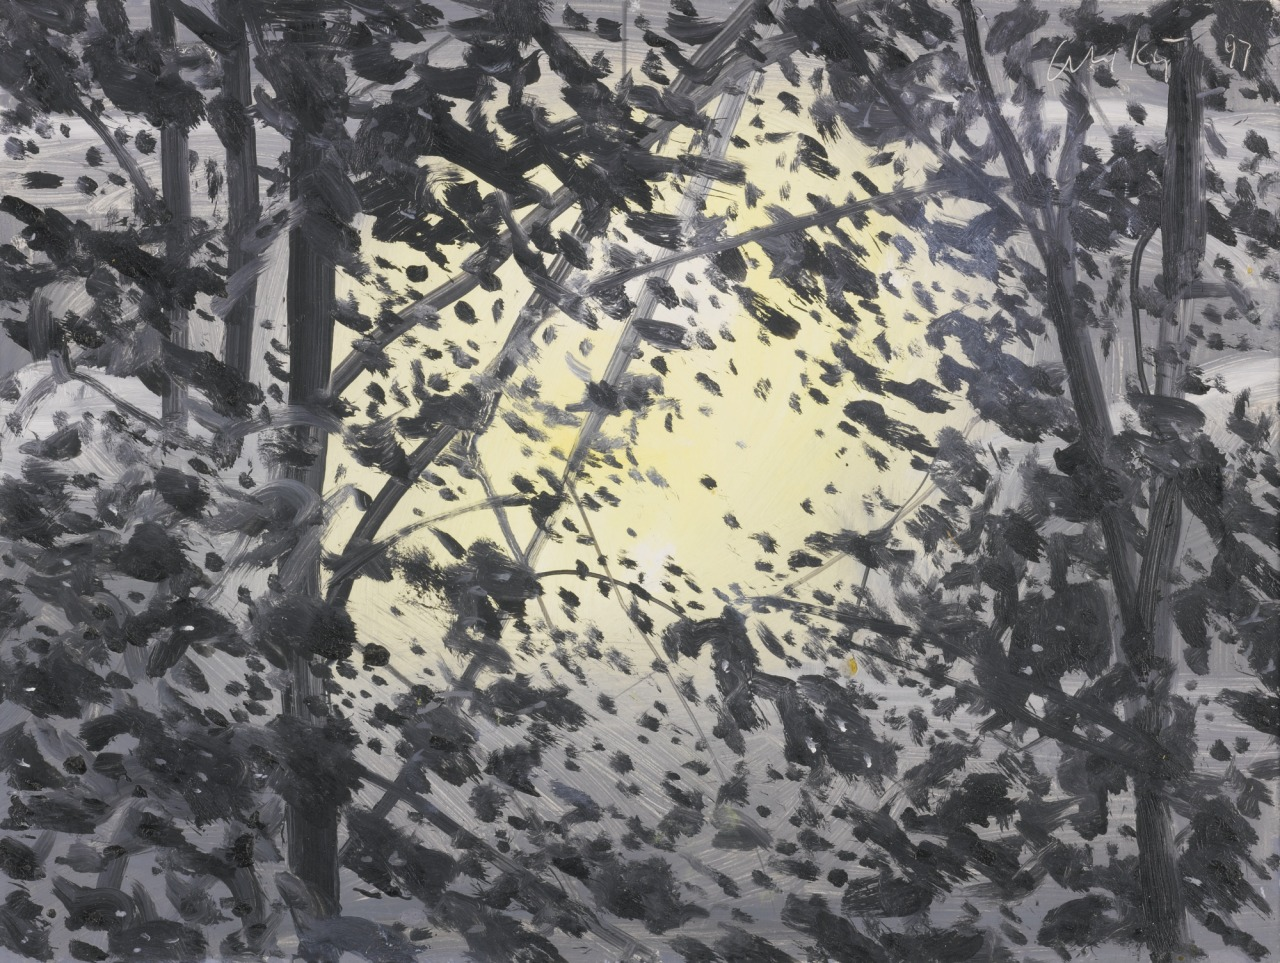 thunderstruck9:  Alex Katz (American, b. 1927), Moonlight, 1997. Oil on board, 9 x 12 in.